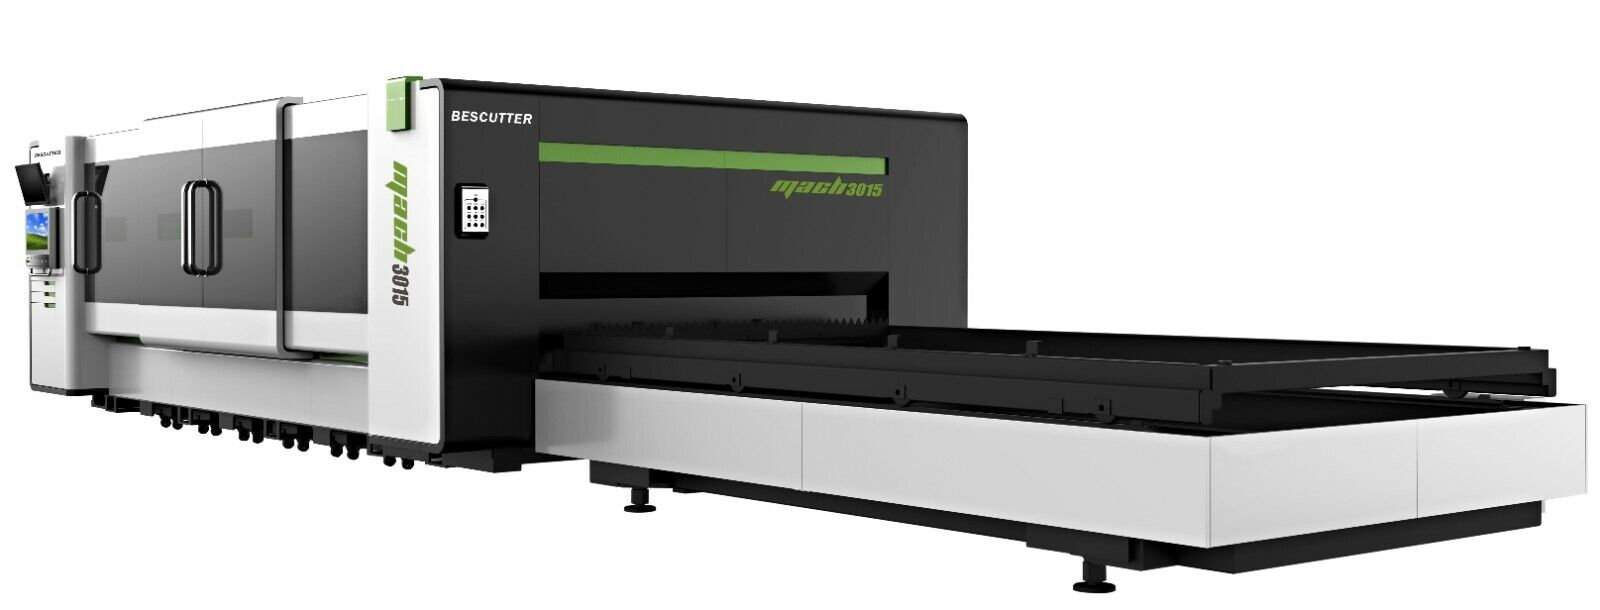 NEW BESCUTTER MACH SPEED 6-15KW 5'X10' IPG FIBER LASER CUTTER FULLY ENCLOSED